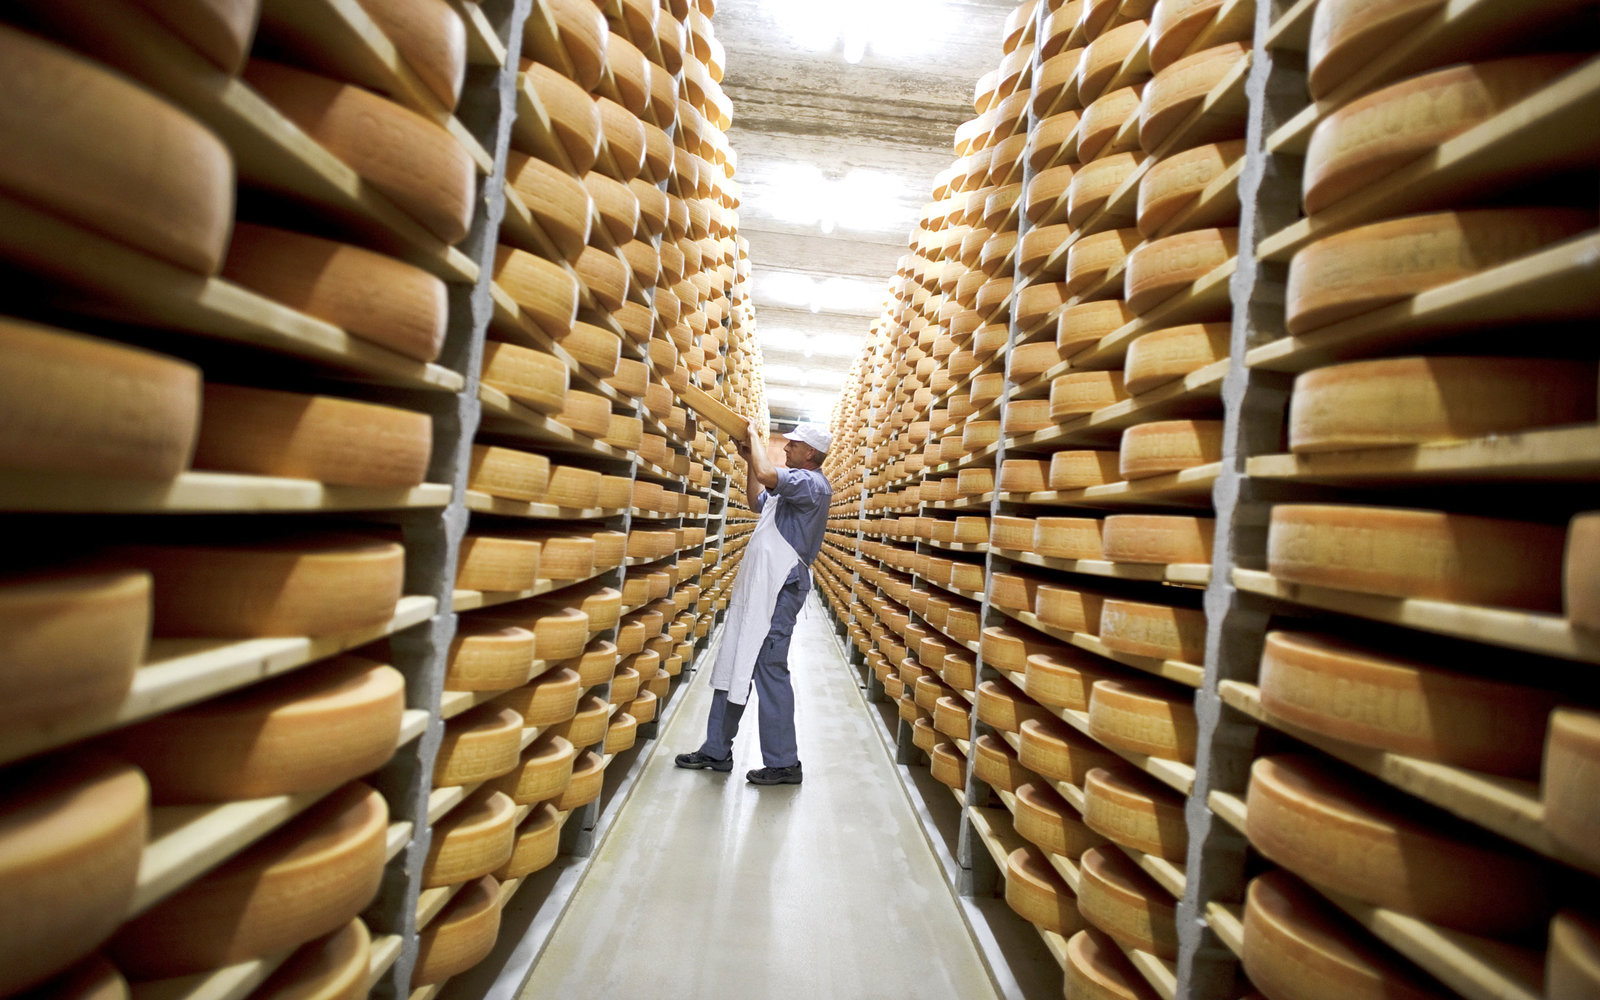 The Ultimate Cheese-Lover's Bucket List